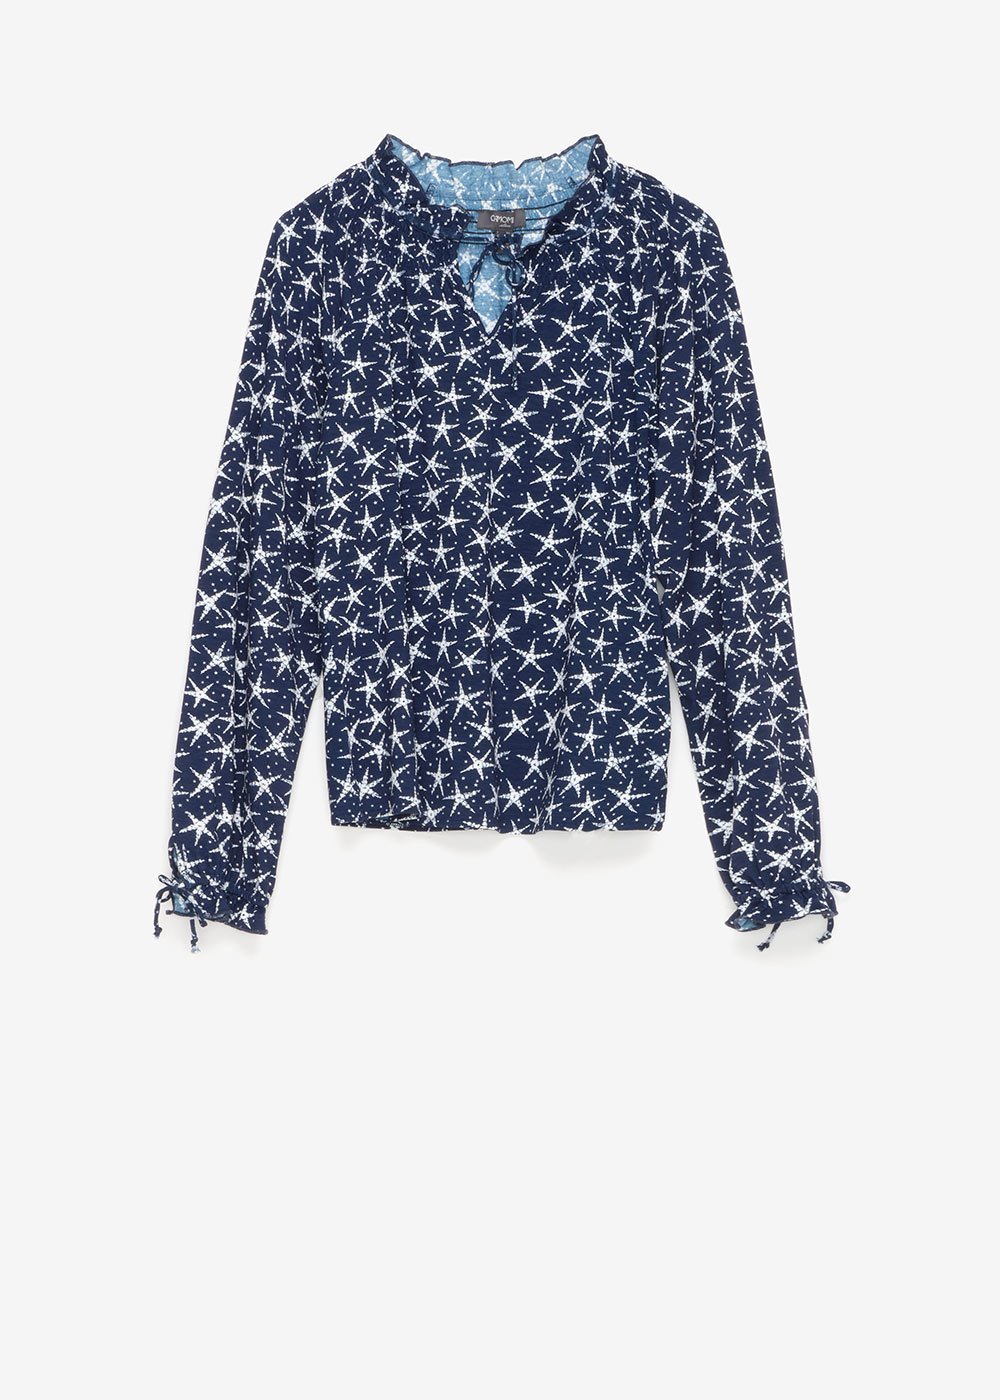 Susan t-shirt with star pattern - Blue / White / Multi - Woman